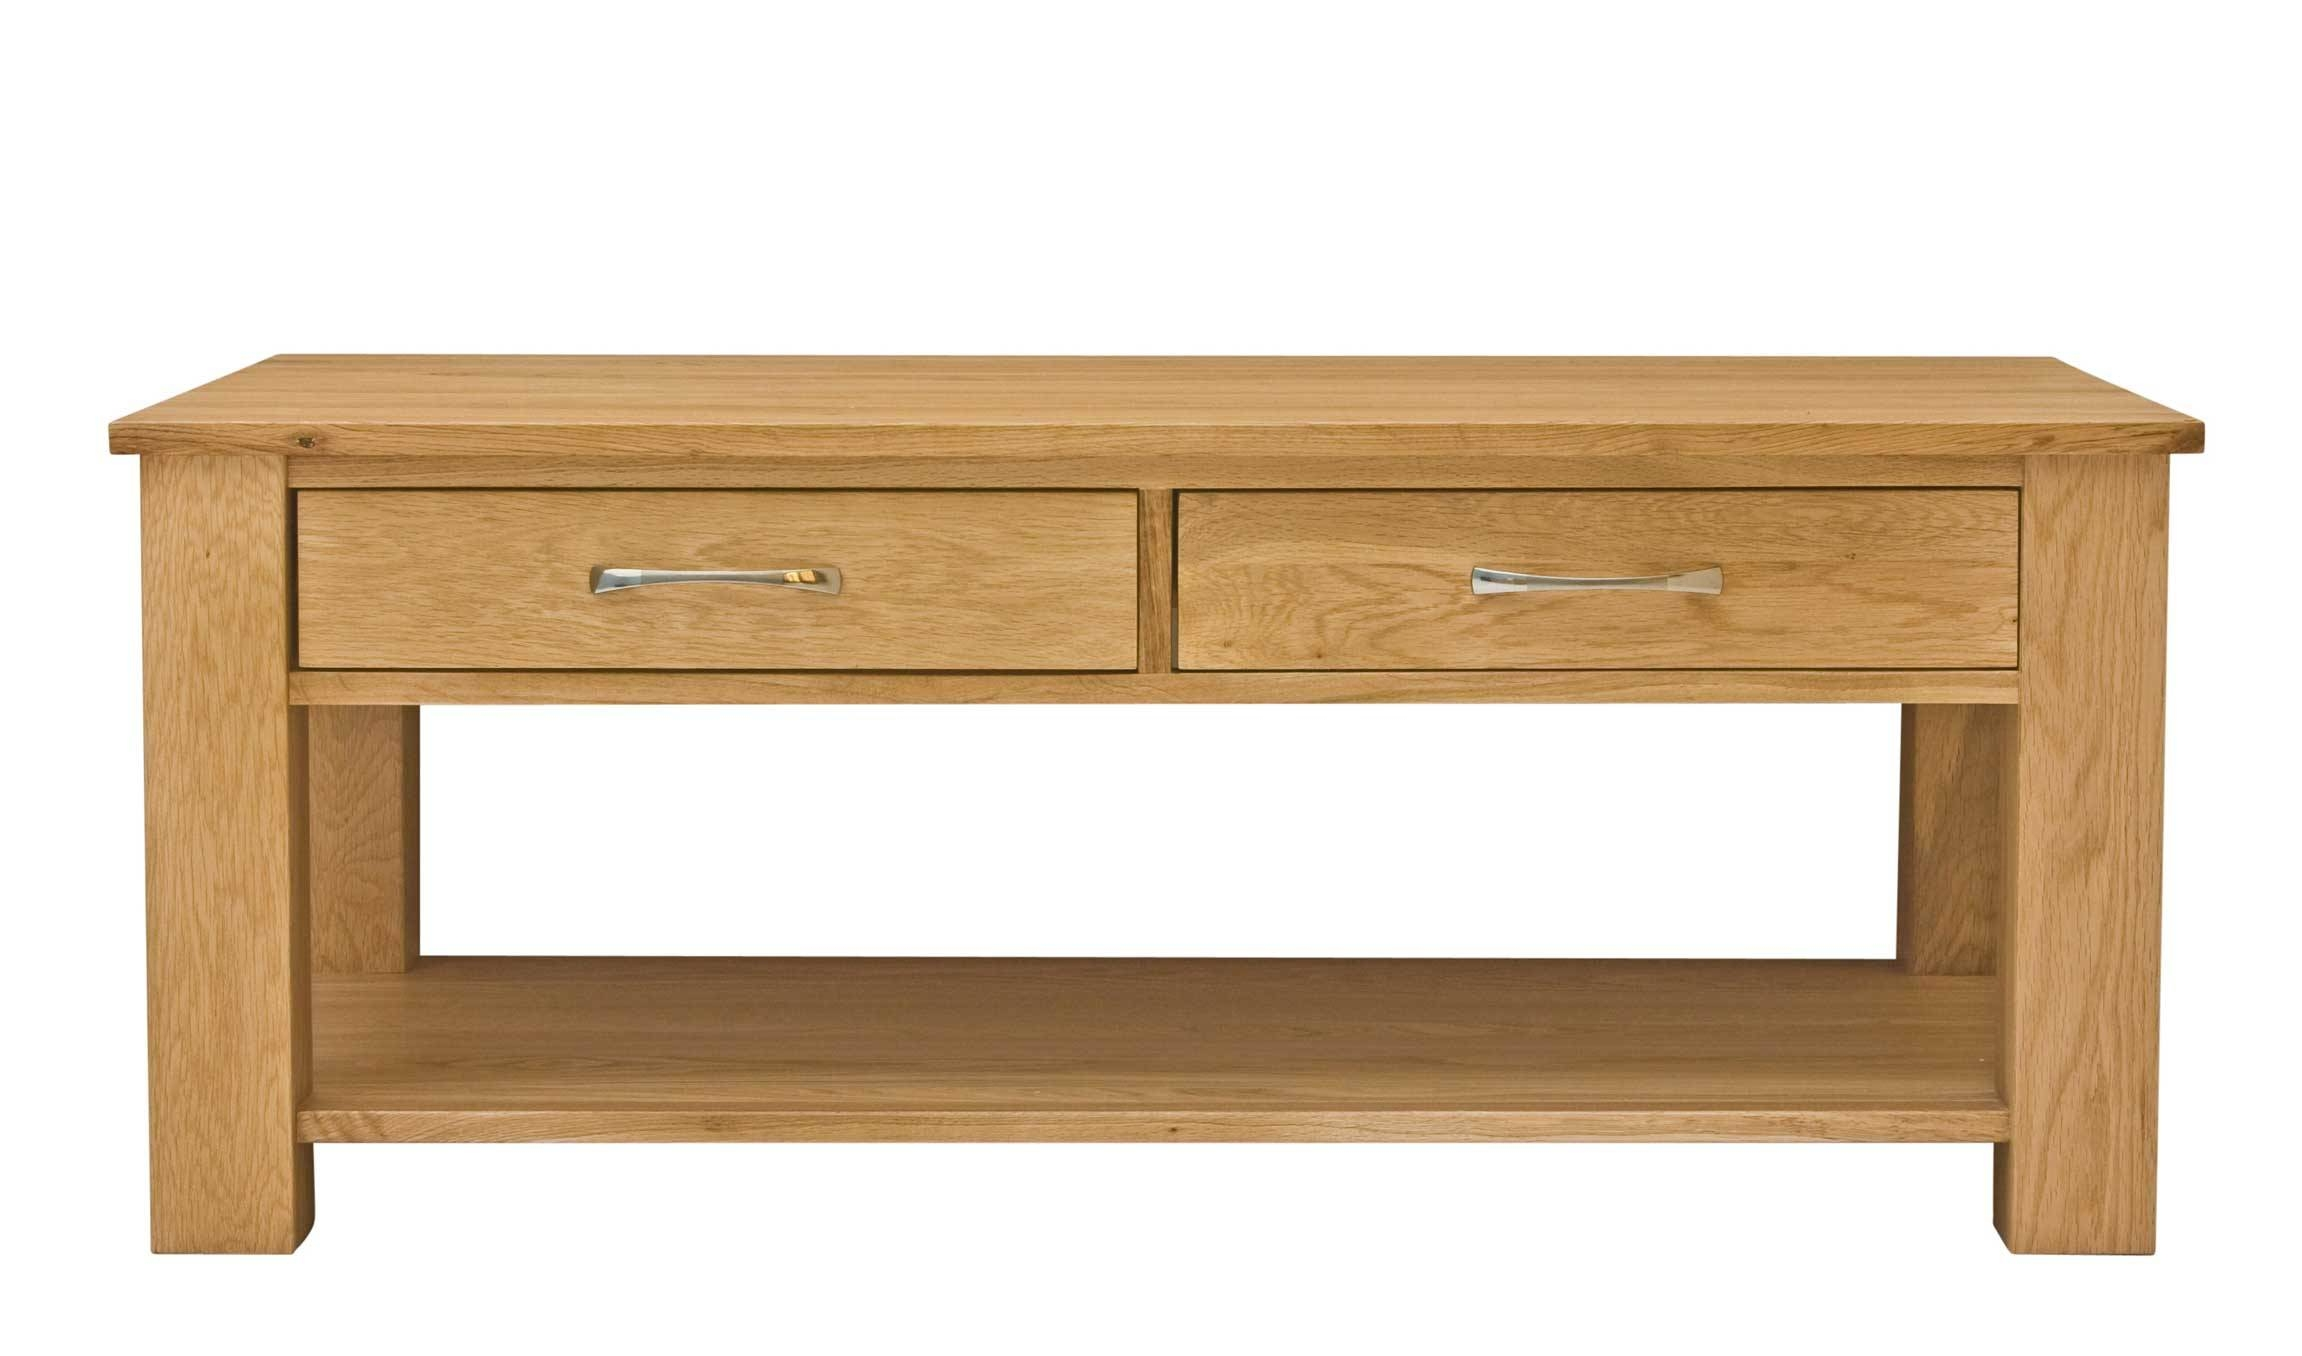 Classic Oak Coffee Table With Drawers | Hampshire Furniture intended for Oak Coffee Table With Drawers (Image 2 of 15)